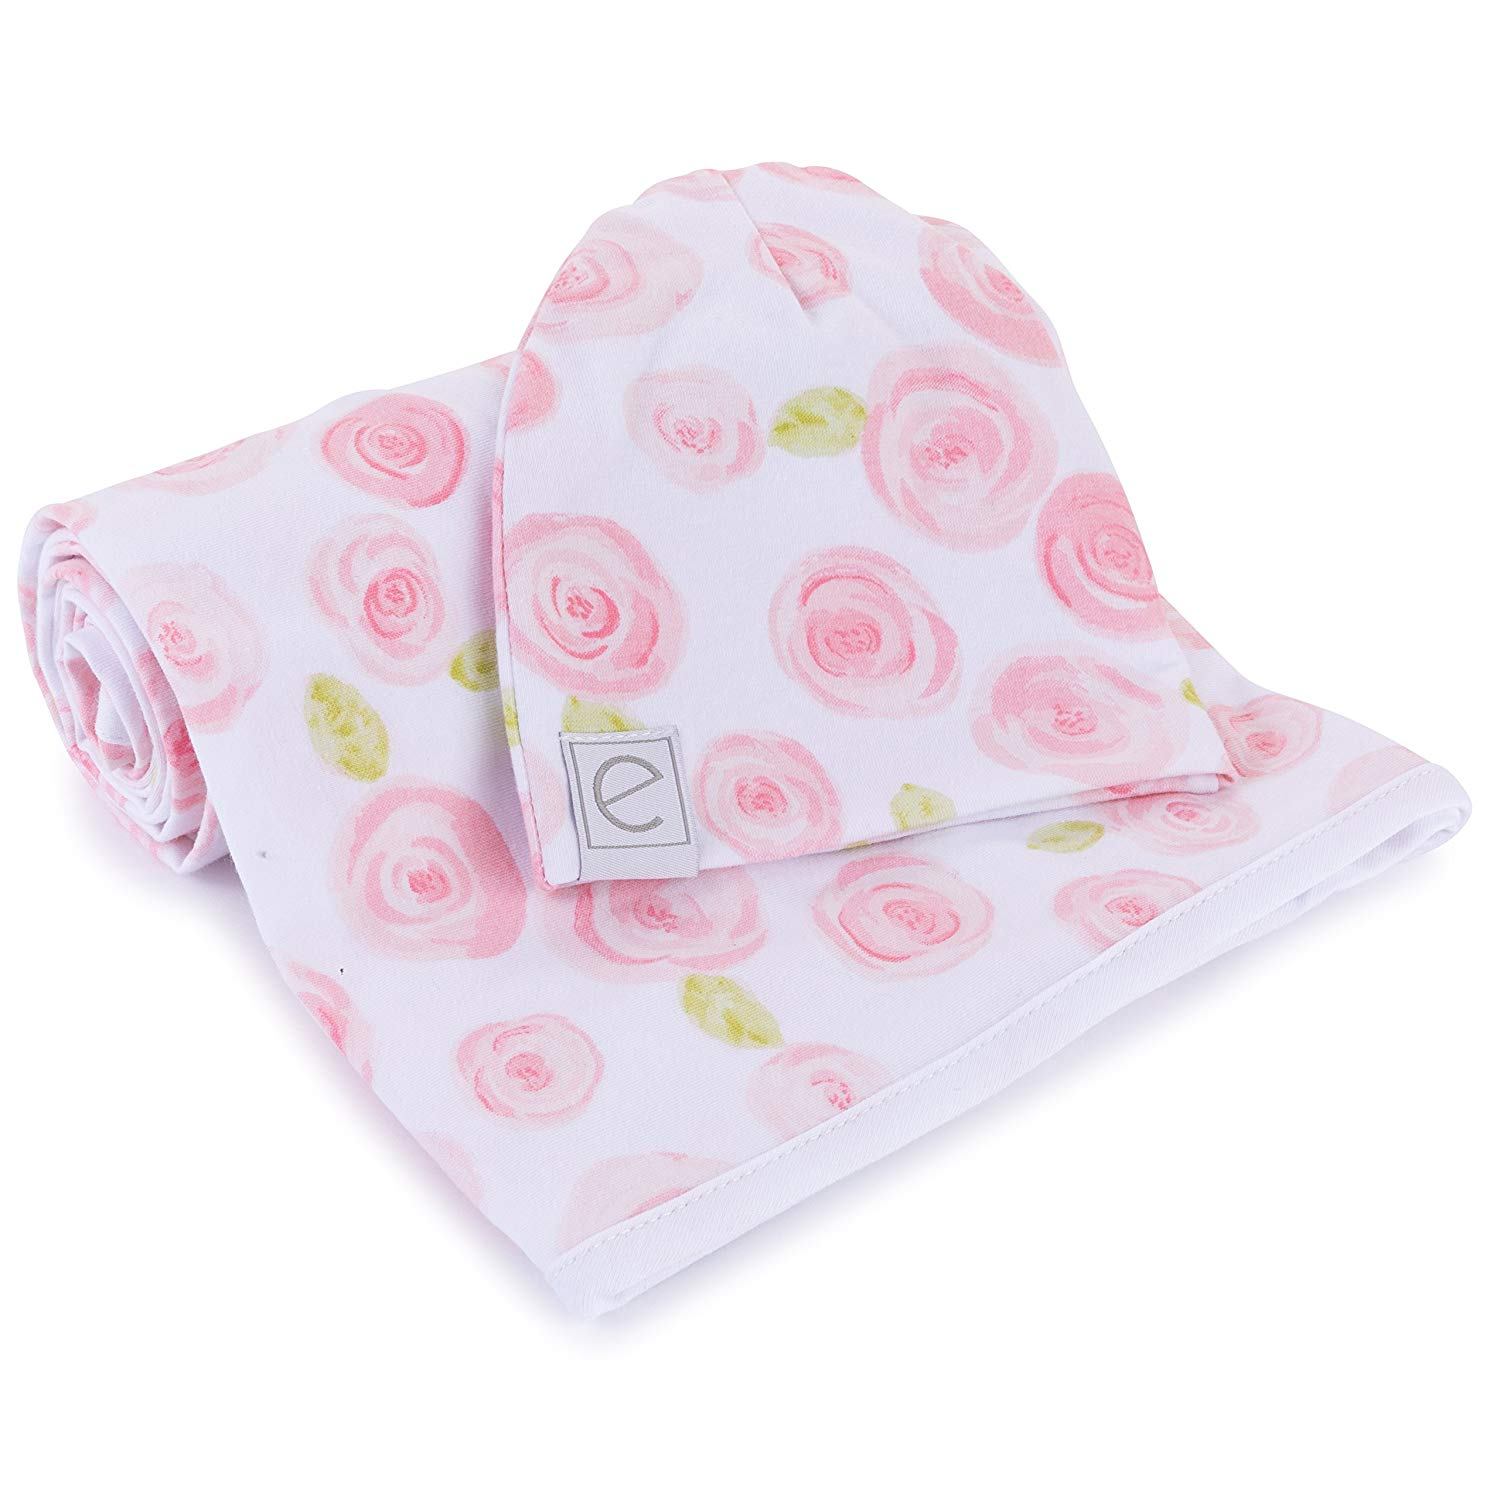 Cotton Knit Jersey Swaddle Blanket and 2 Beanie Baby Hats Gift Set, Large Receiving Blanket by Ely's & Co (Rose Print)